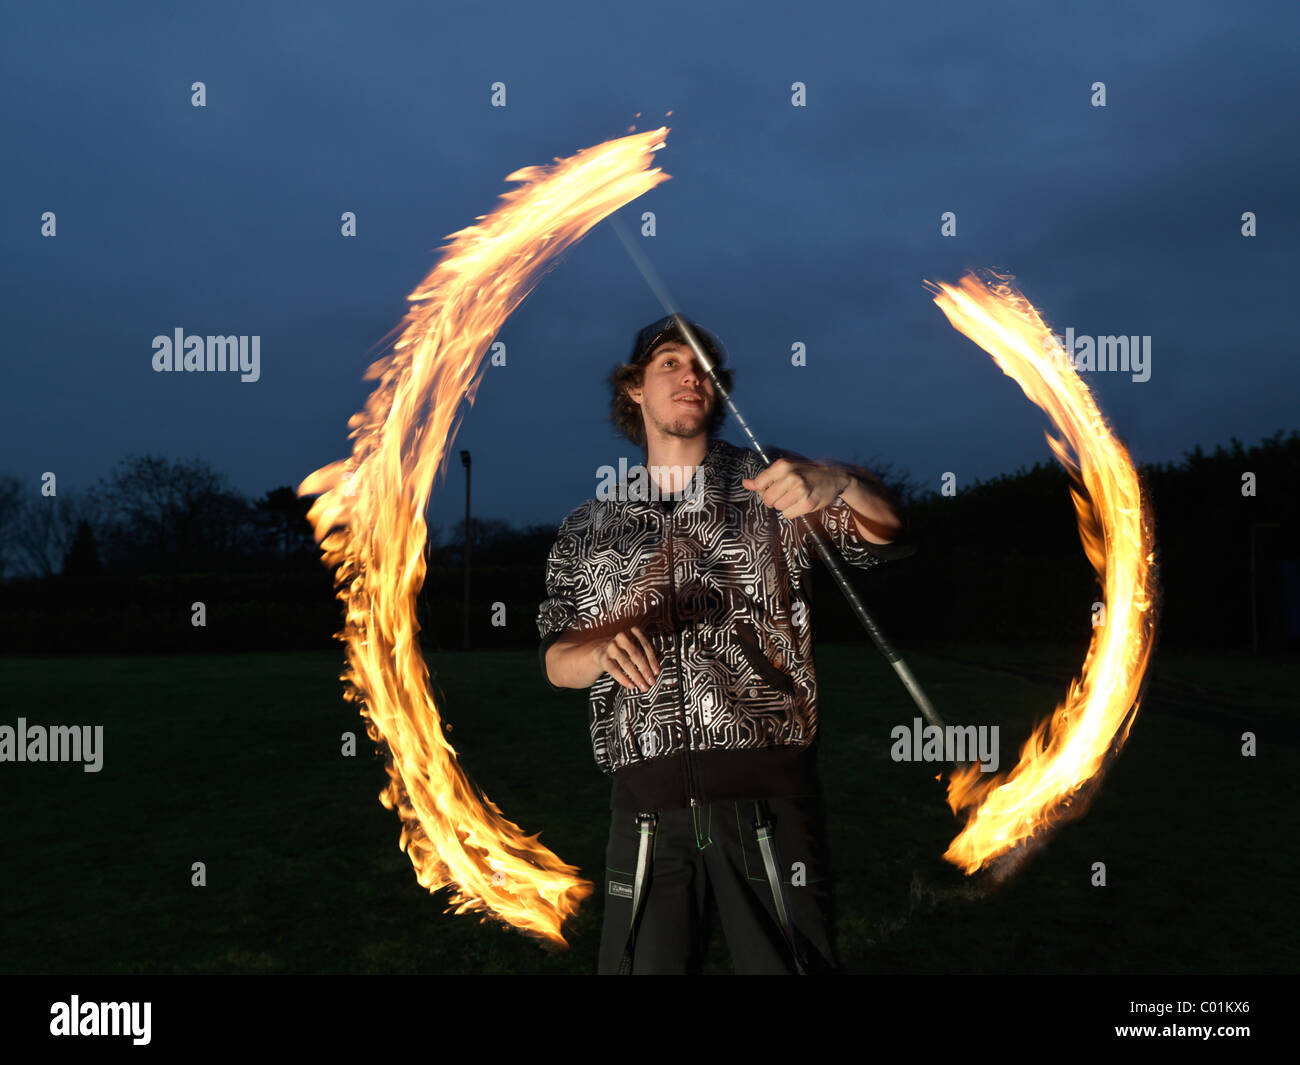 Fire eater juggling - Stock Image